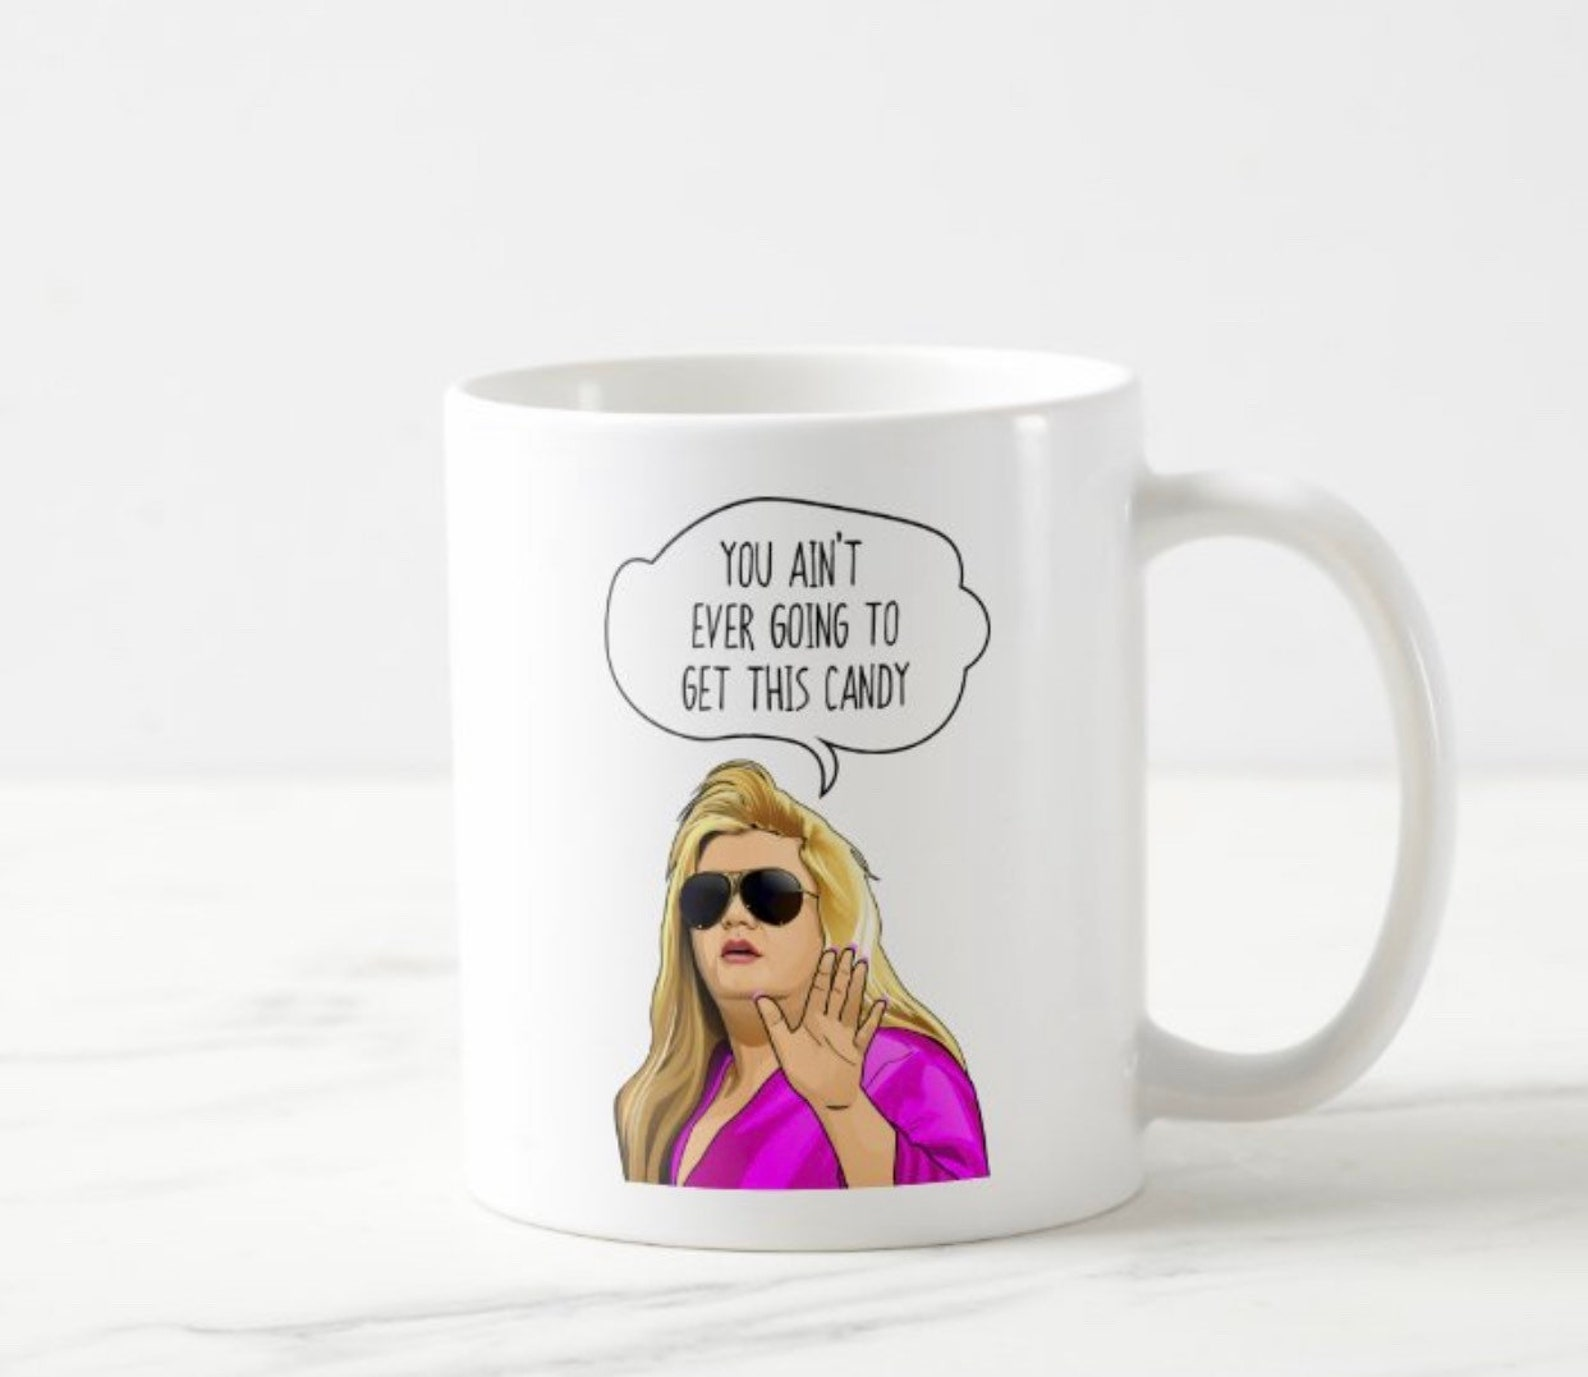 gemma collins you aint ever going to get this candy mug  etsy